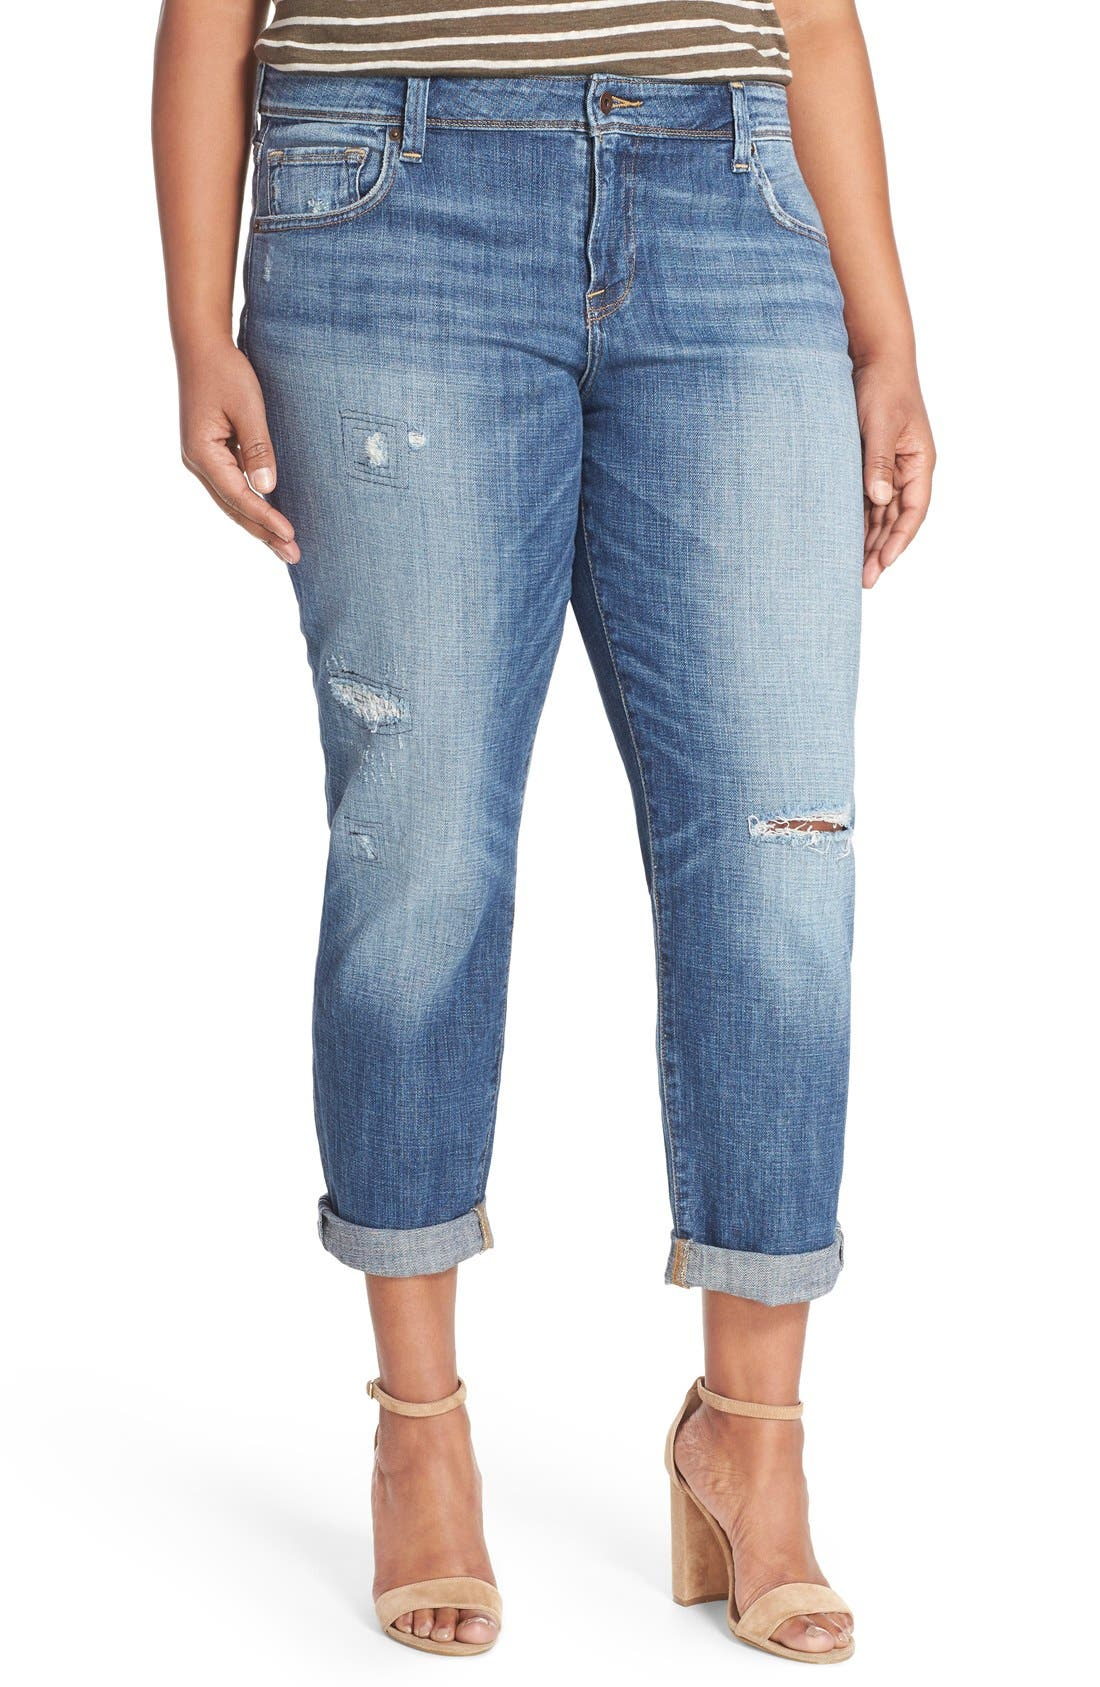 Alternate Image 1 Selected - Lucky Brand Reese Distressed Boyfriend Jeans (Northridge Park) (Plus Size)